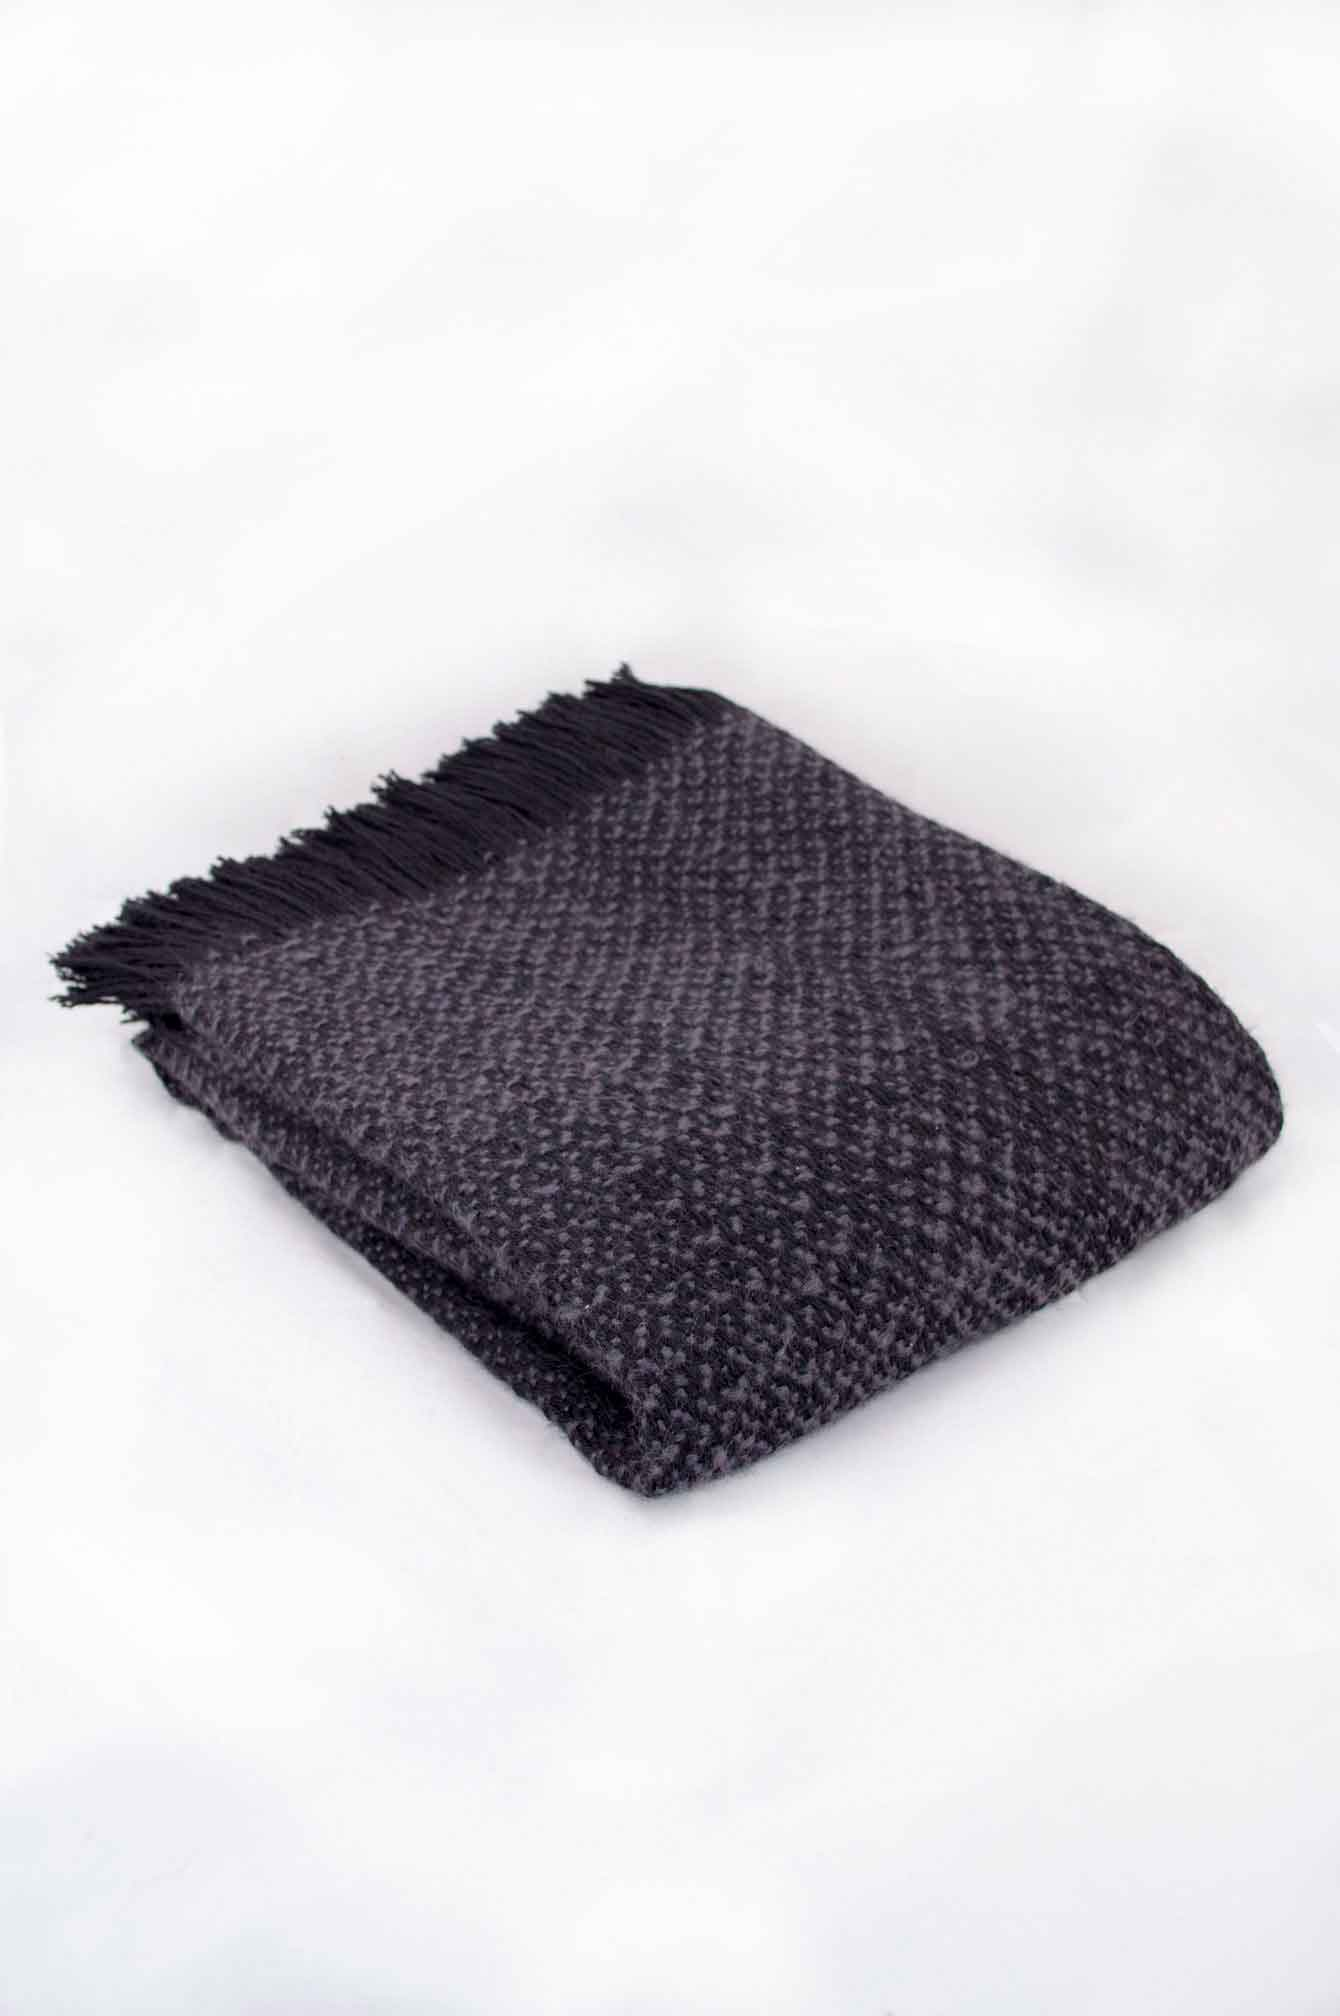 Throw blanketcreated with blue lavendermohair,and black wool.  Technique:Throw blanket hand-woven in a traditional way on non-mechanical looms in the 7th arrondissement of Paris in France.  Finishes: Right edge. Double stitching. 2 edges with 9 cm high of wool fringes.  Size: 140 x 220 cm.  Single piece / 1 copy only.